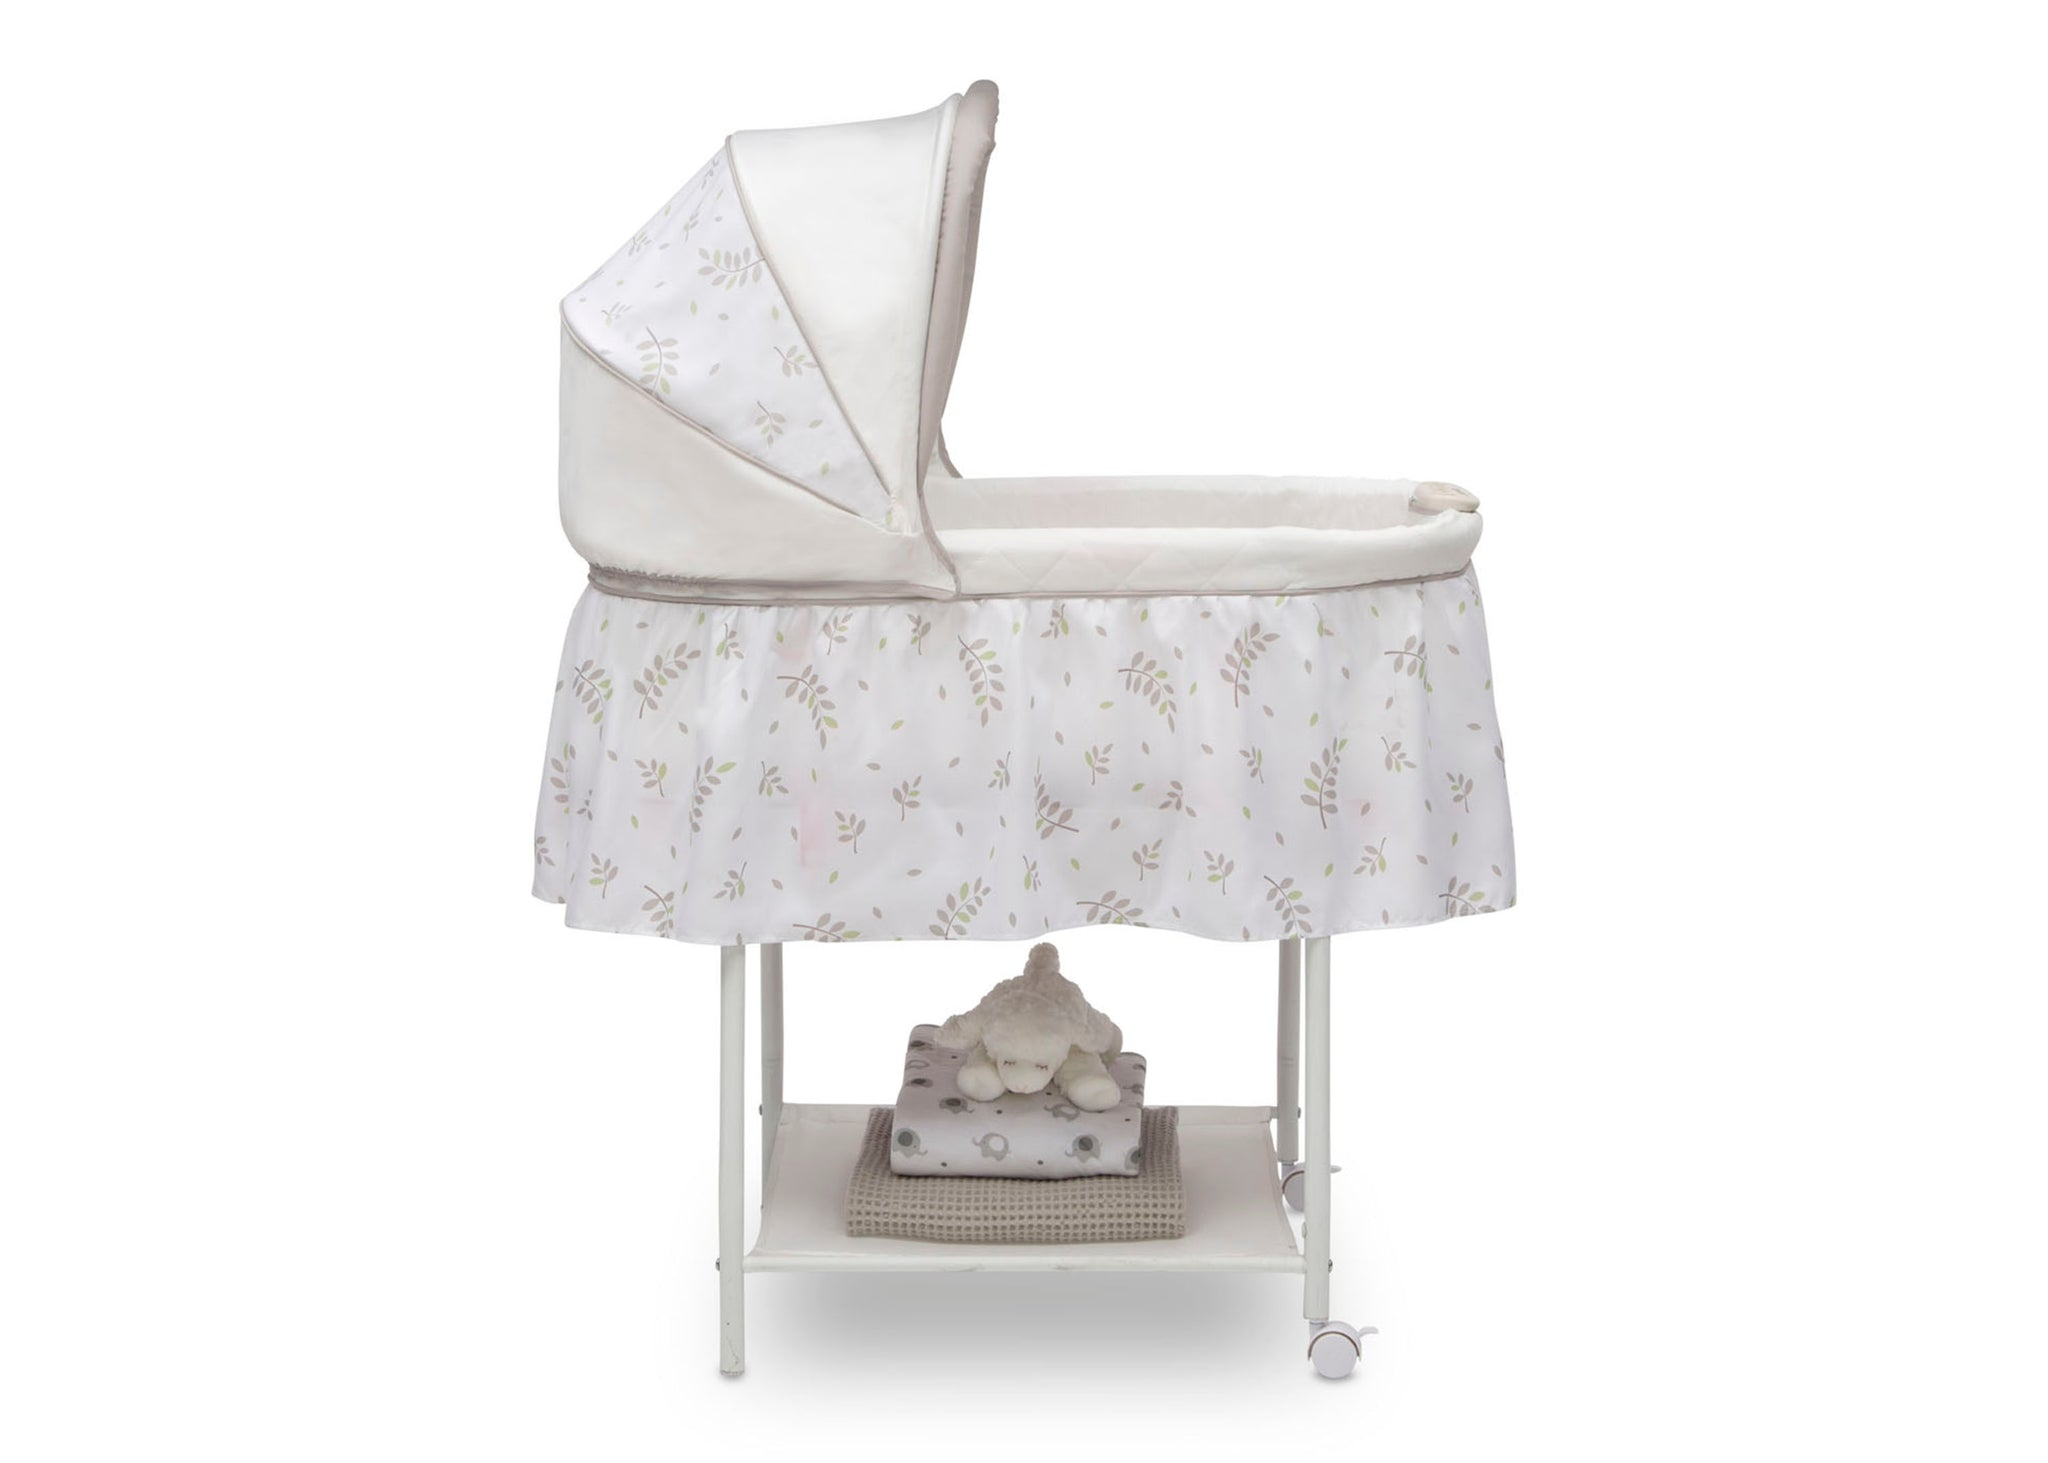 Little Folks Willow (2162) Silent Auto Gliding Bassinet by Delta Children, Side Silo View